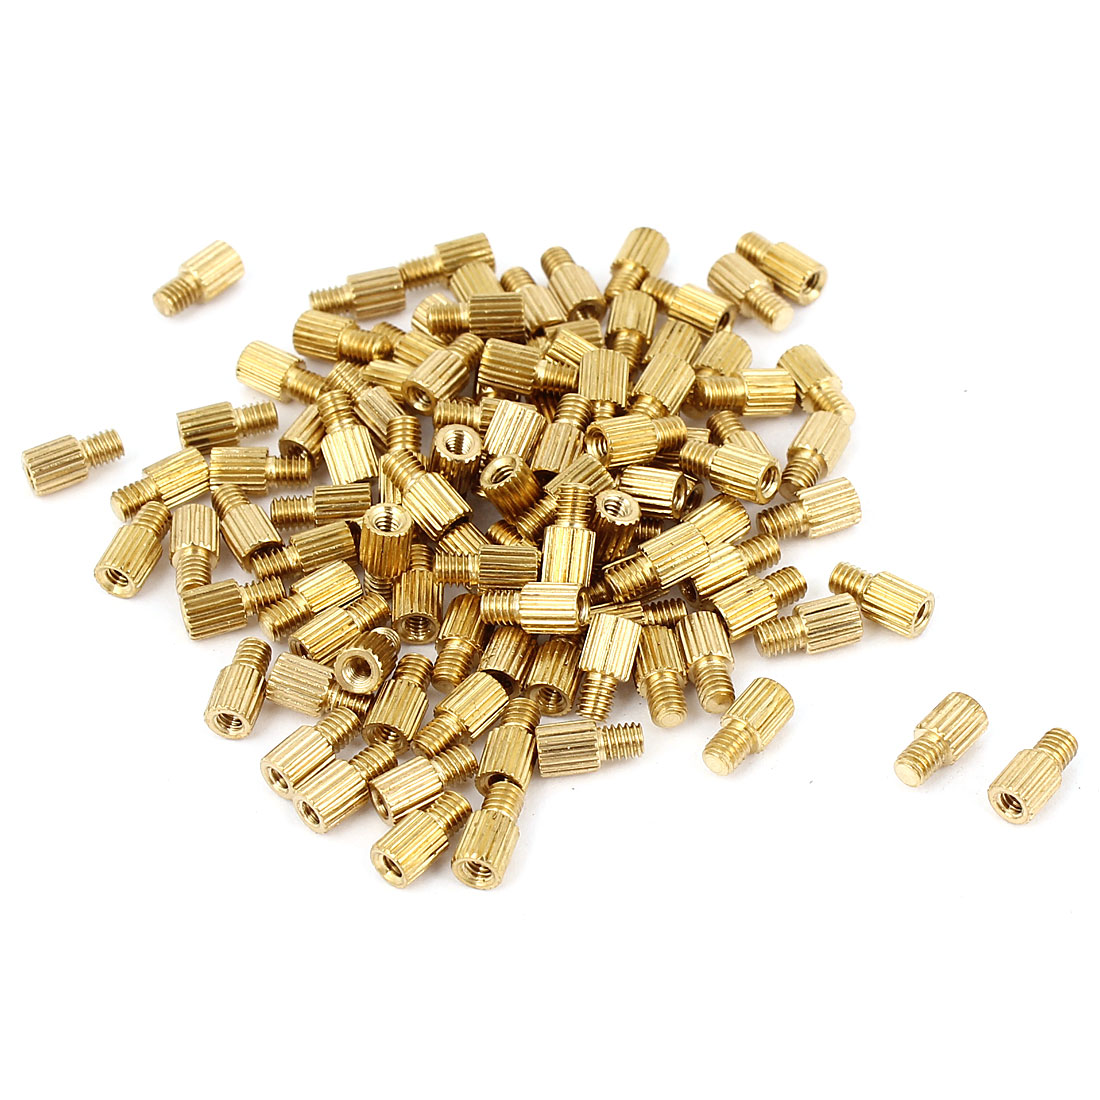 100Pcs Male to Female Thread Grooved Brass Pillars Standoff M2x4mm